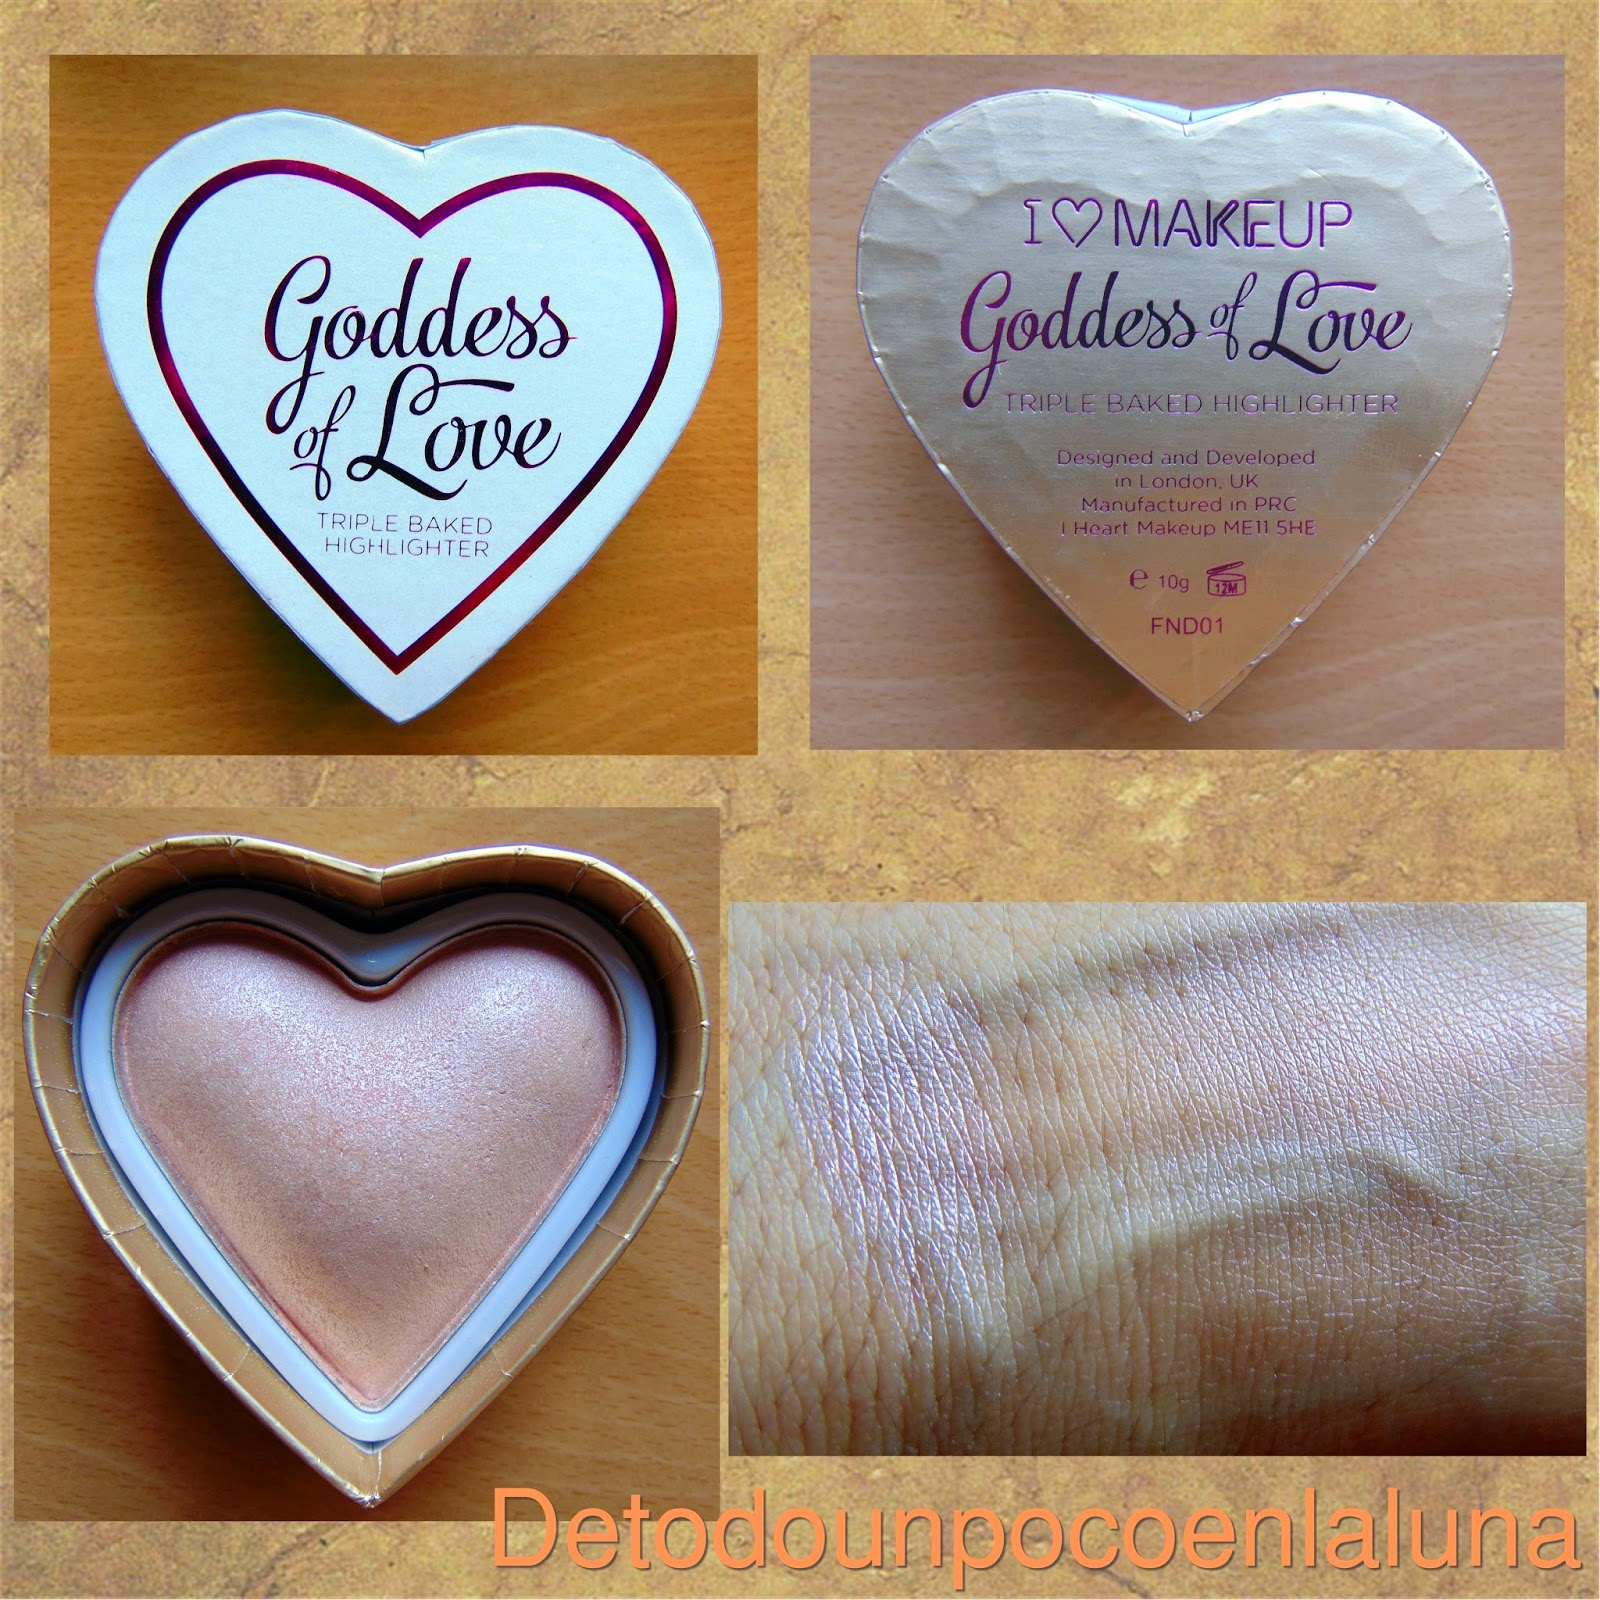 iluminador goddess of love i heart makeup